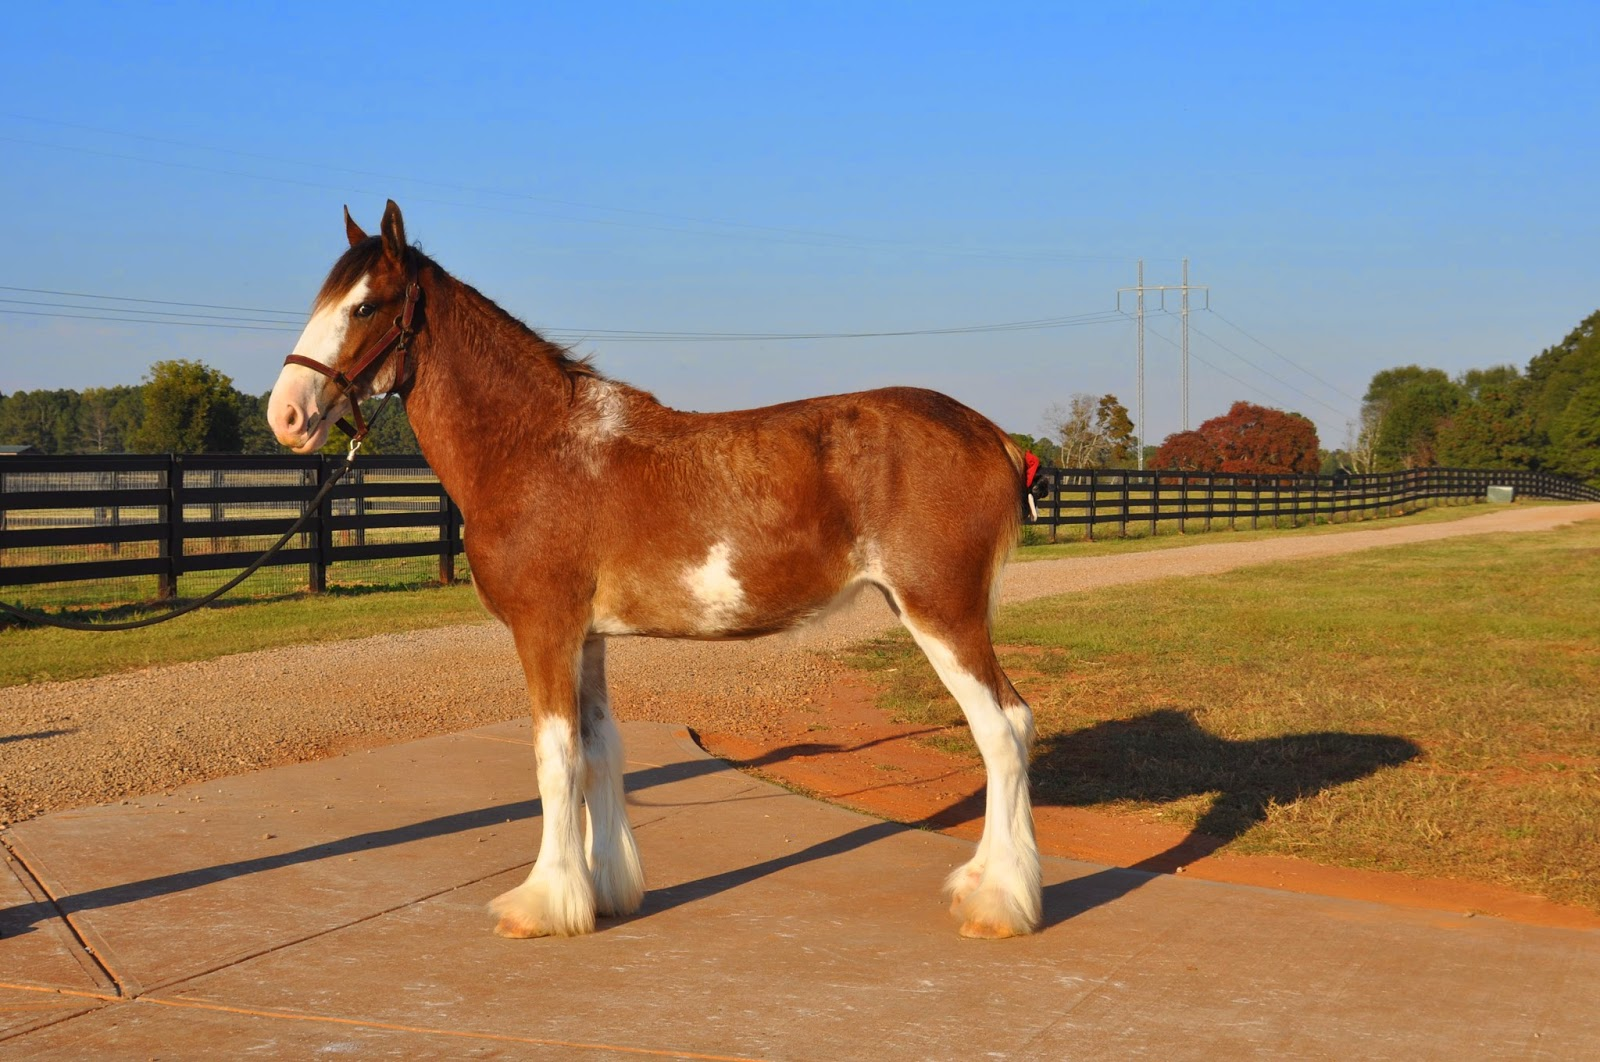 DoTerra, Young Living, Equine Raindrop, Essential Oils, Essential Oils for Horses, AromaTherapy, Clydesdales, Clydesdales for Sale, Budweiser Clydesdales